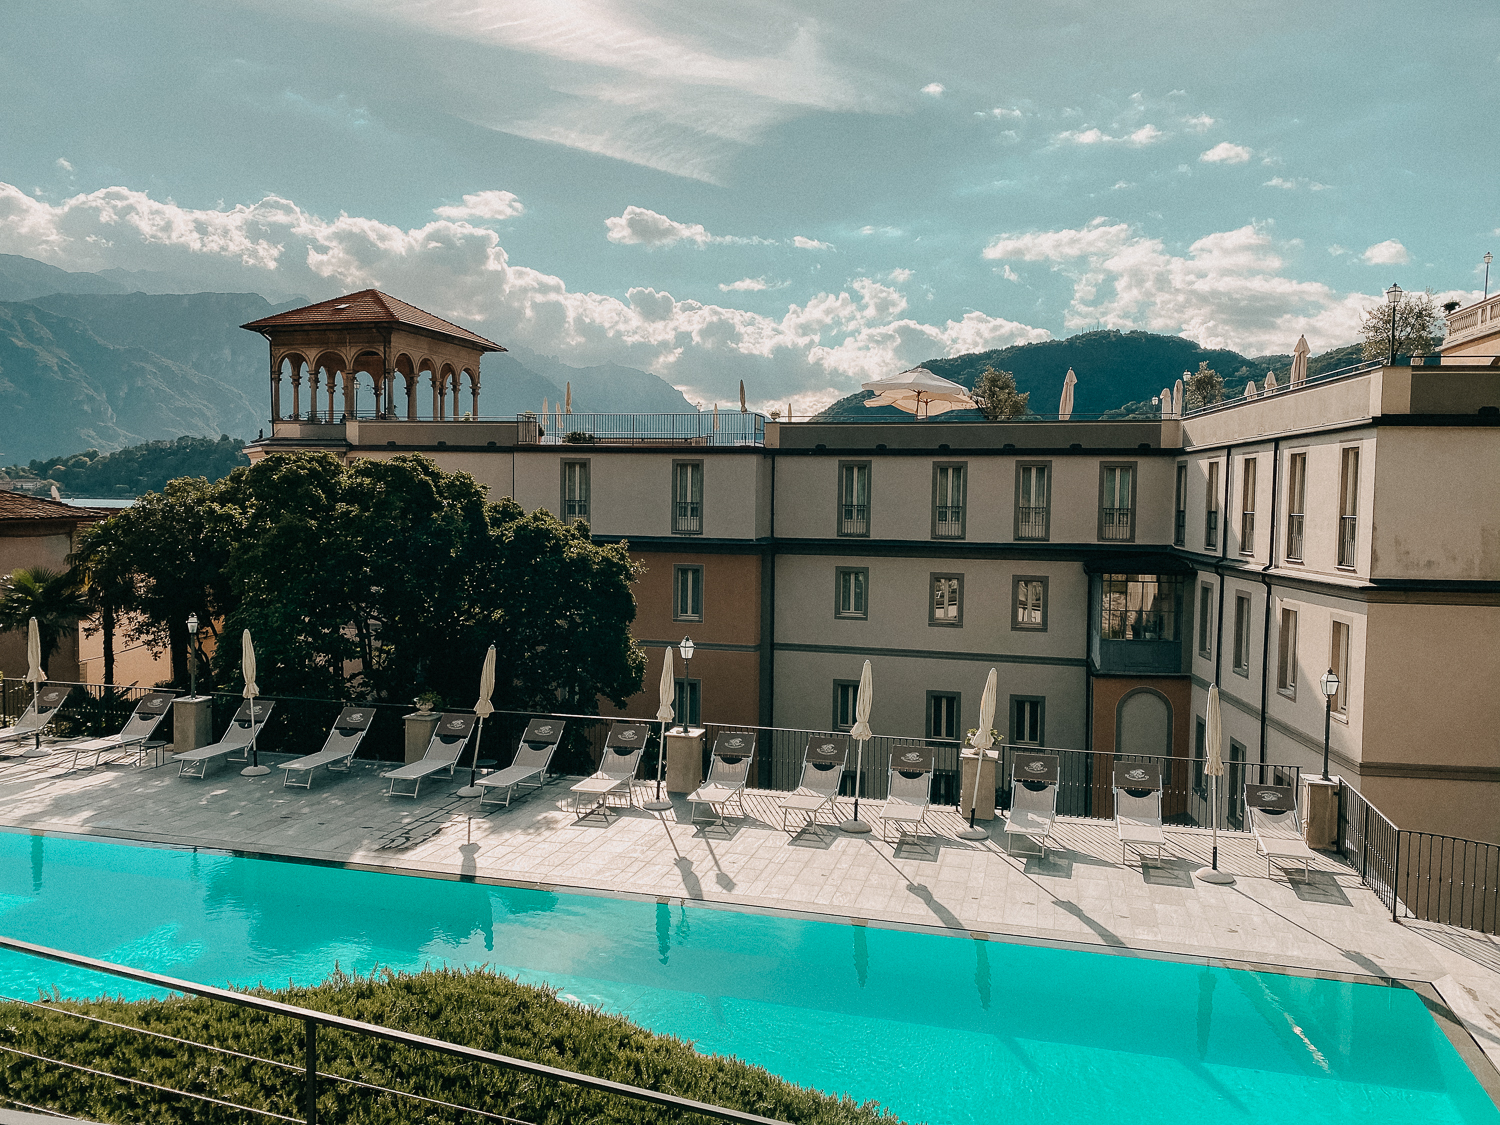 Comer See Hotel Grand Hotel Cadenabbia italienischer Charme Reiseblog Hotel Tipps Seeblick Comer See Pool